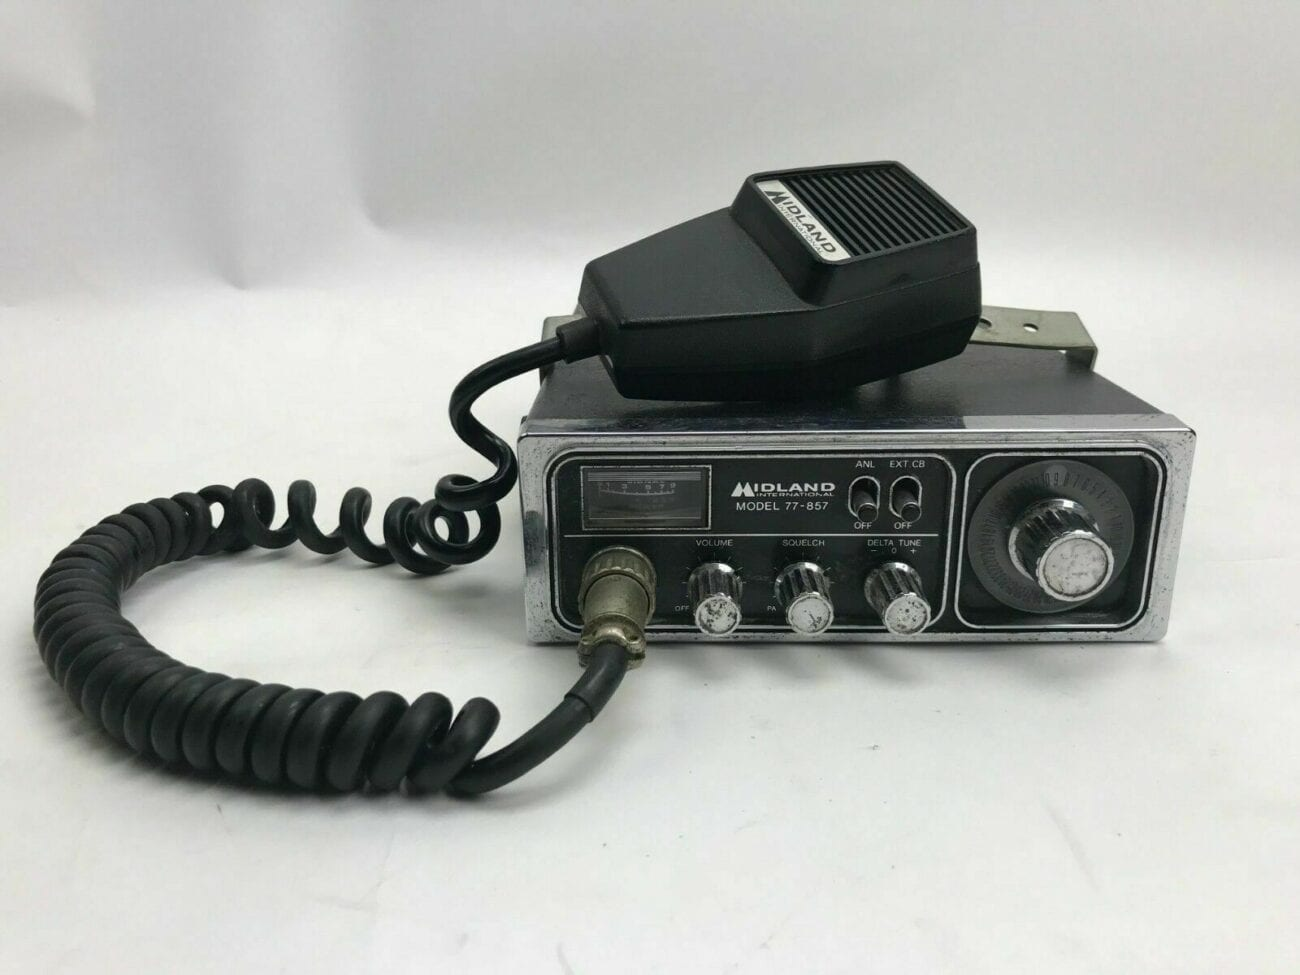 CB radio is an influential device for communication. Check out how CB radio remains relevant, even with new advancements in communication.